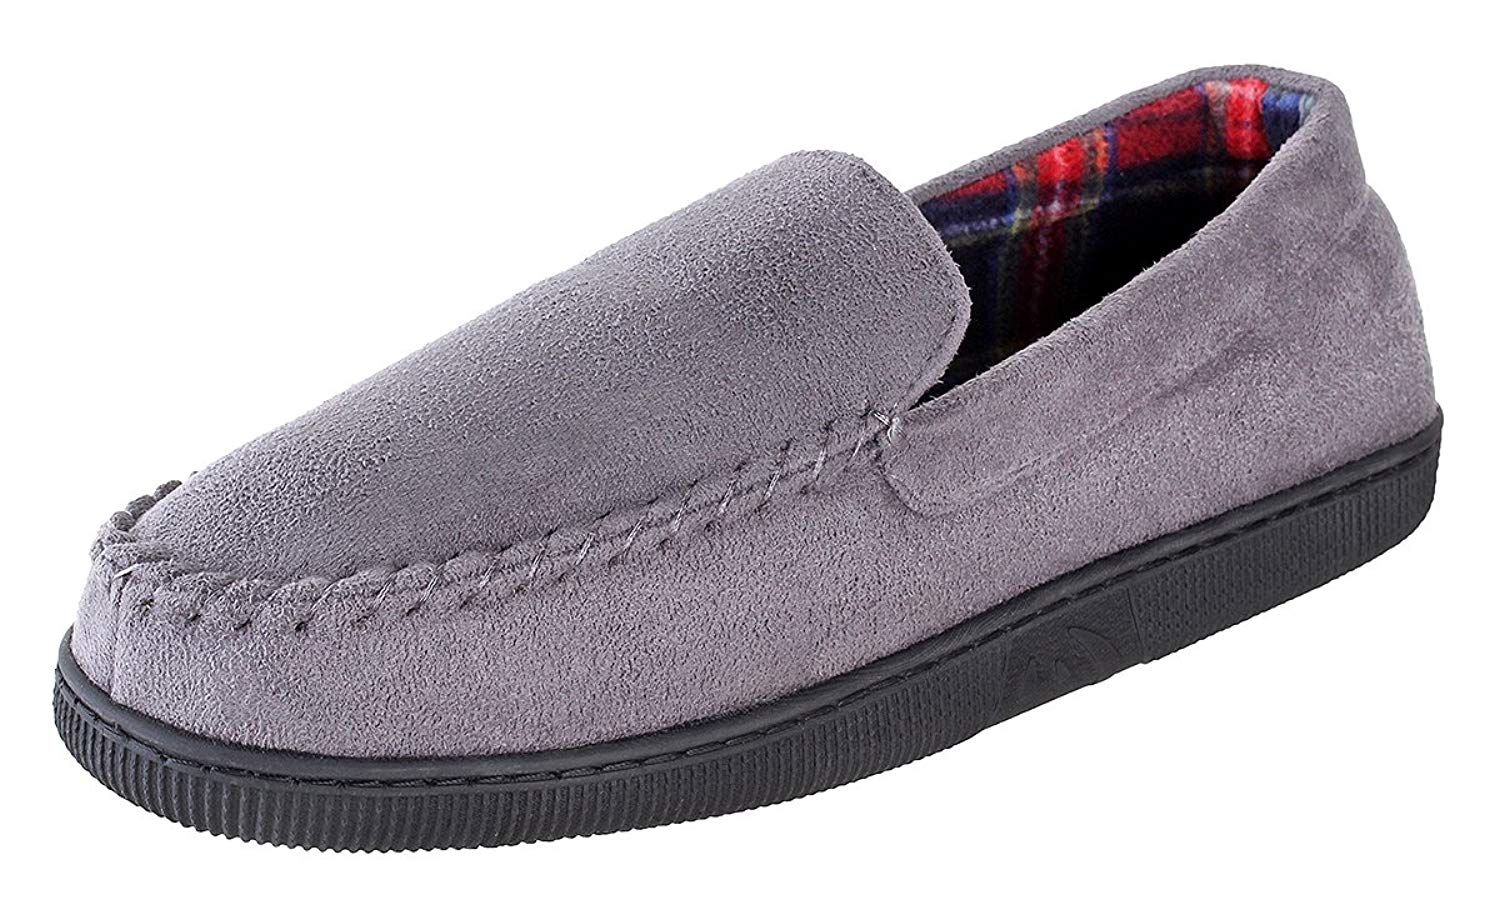 Urban Fox Hudson Suede Slippers Mens | Micro-Suede | Rubber Sole | Plush Plaid Lining | Comfortable House and Outdoor Slippers | Slippers For Men | Slip-On Slippers For Men